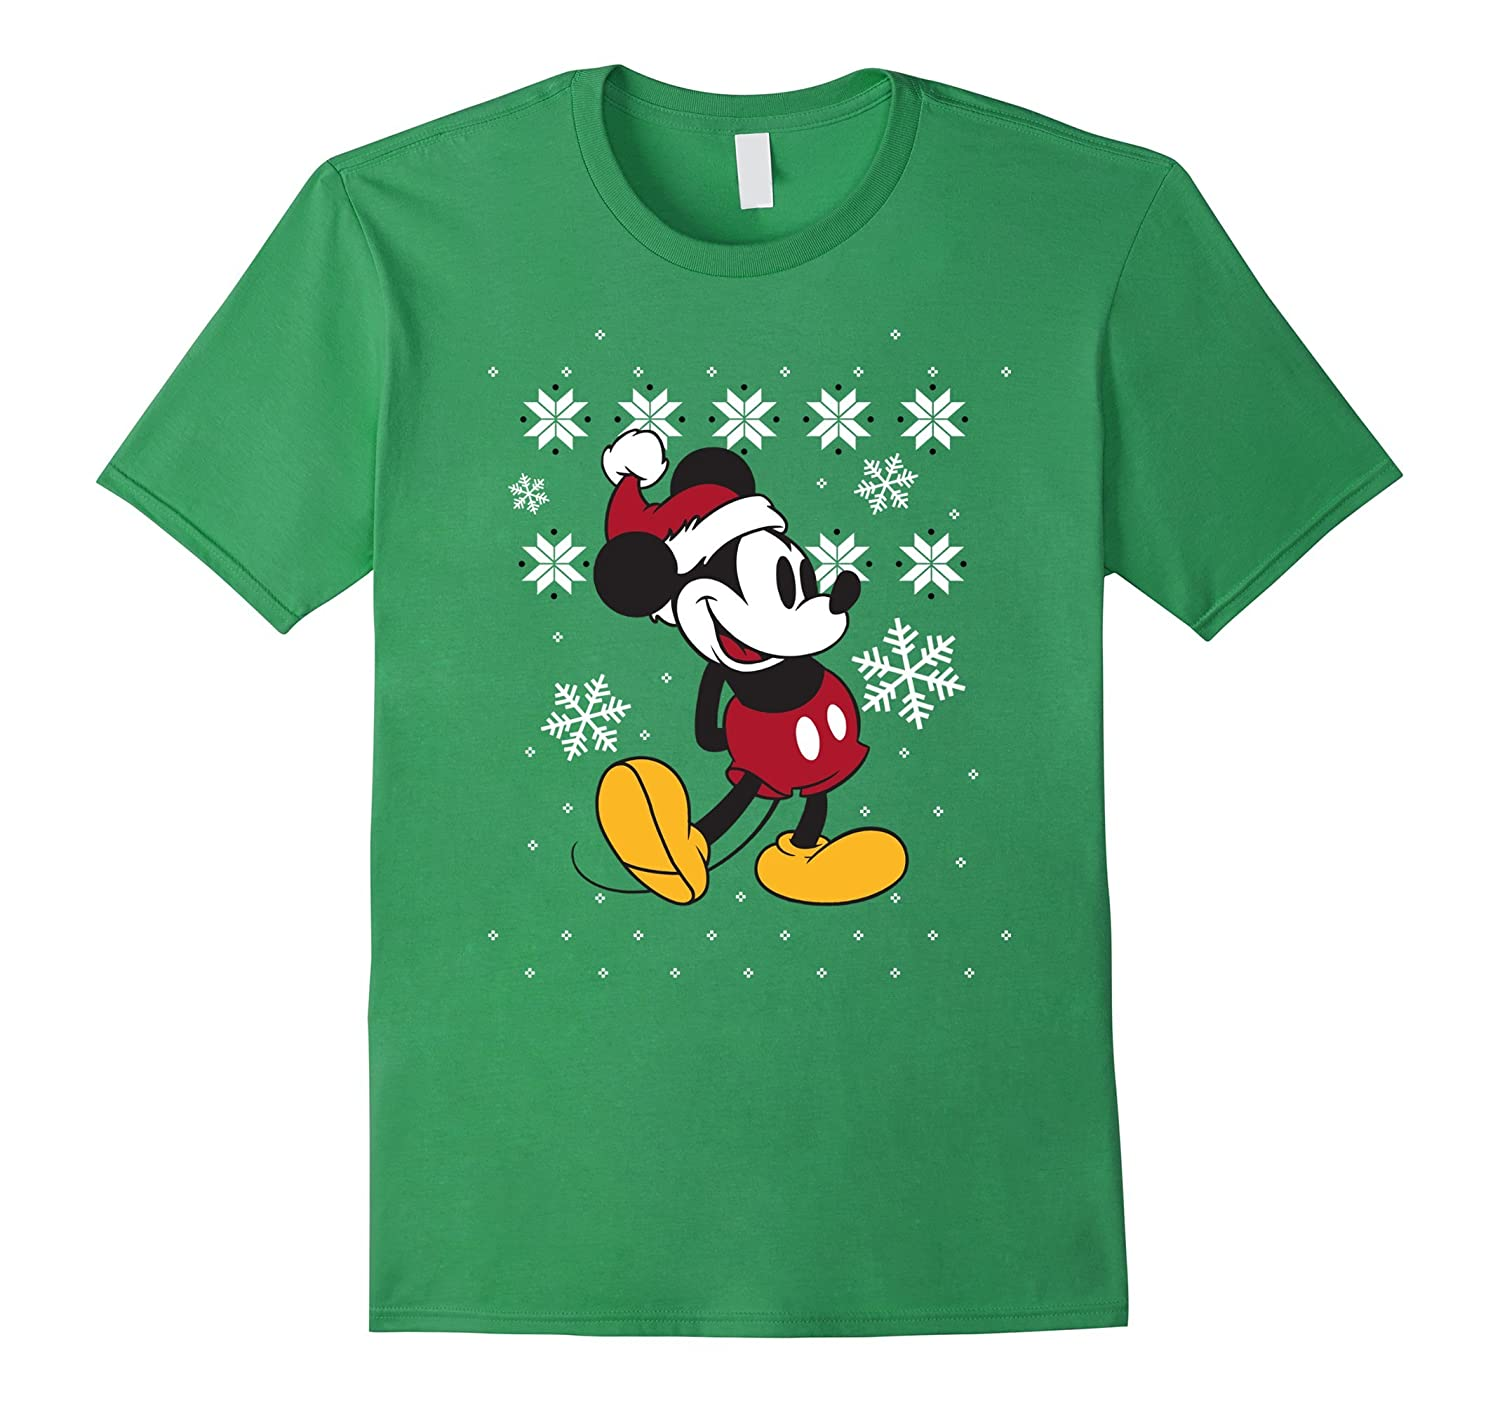 disney mickey mouse christmas sweater pose t shirt rt - Mickey Mouse Christmas Sweater